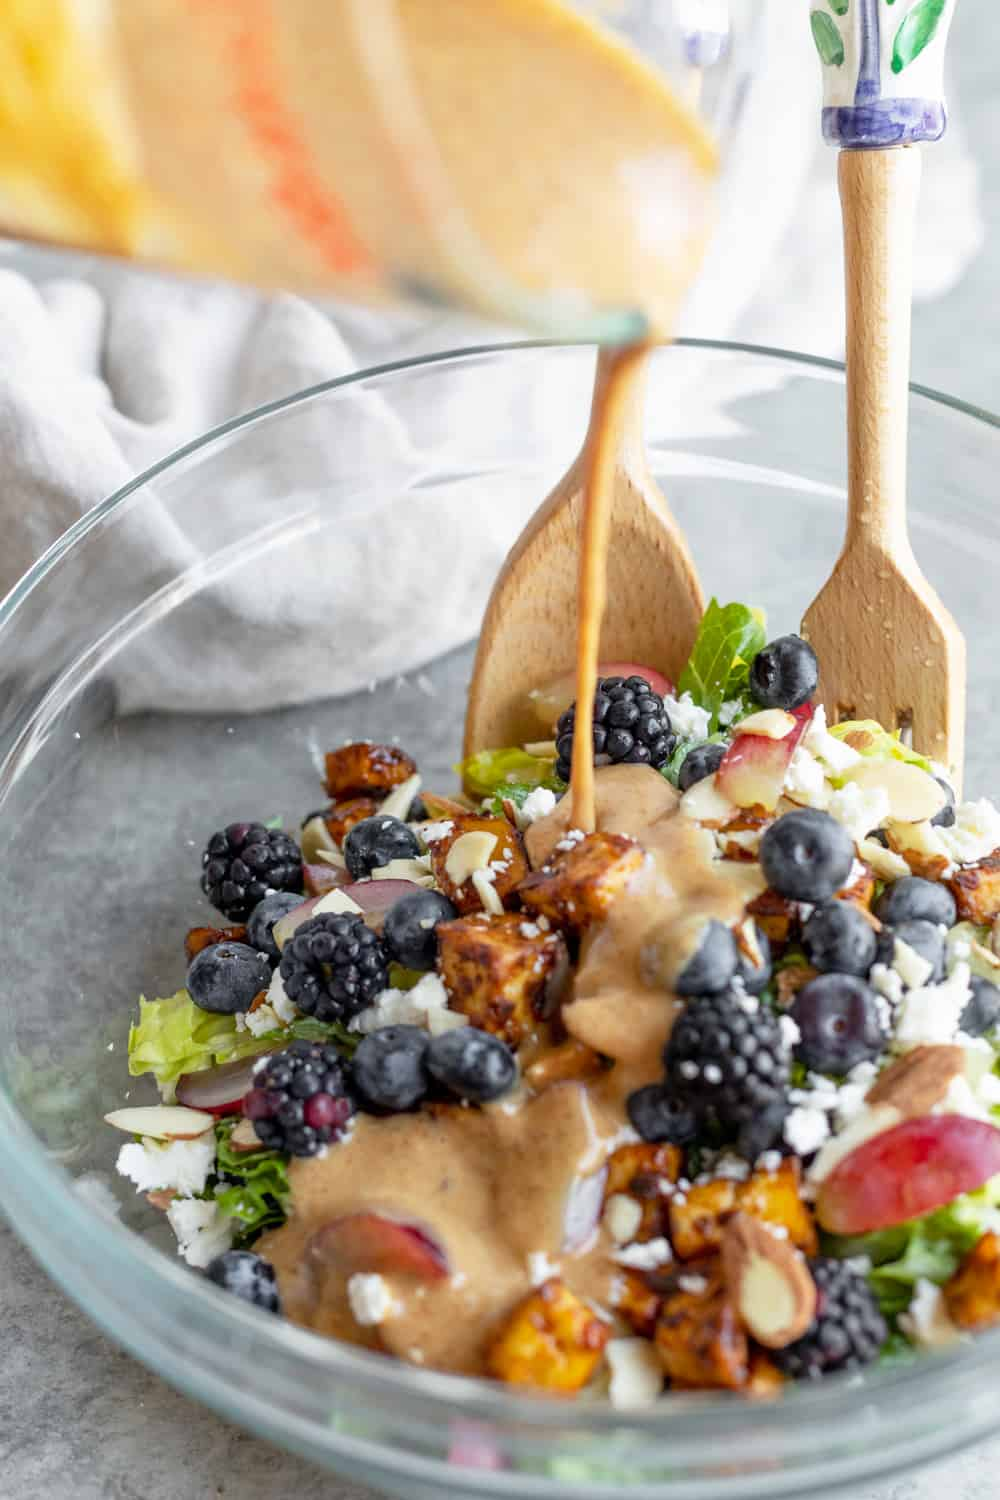 Rainbow Berry Salad with Almond Butter Dressing.